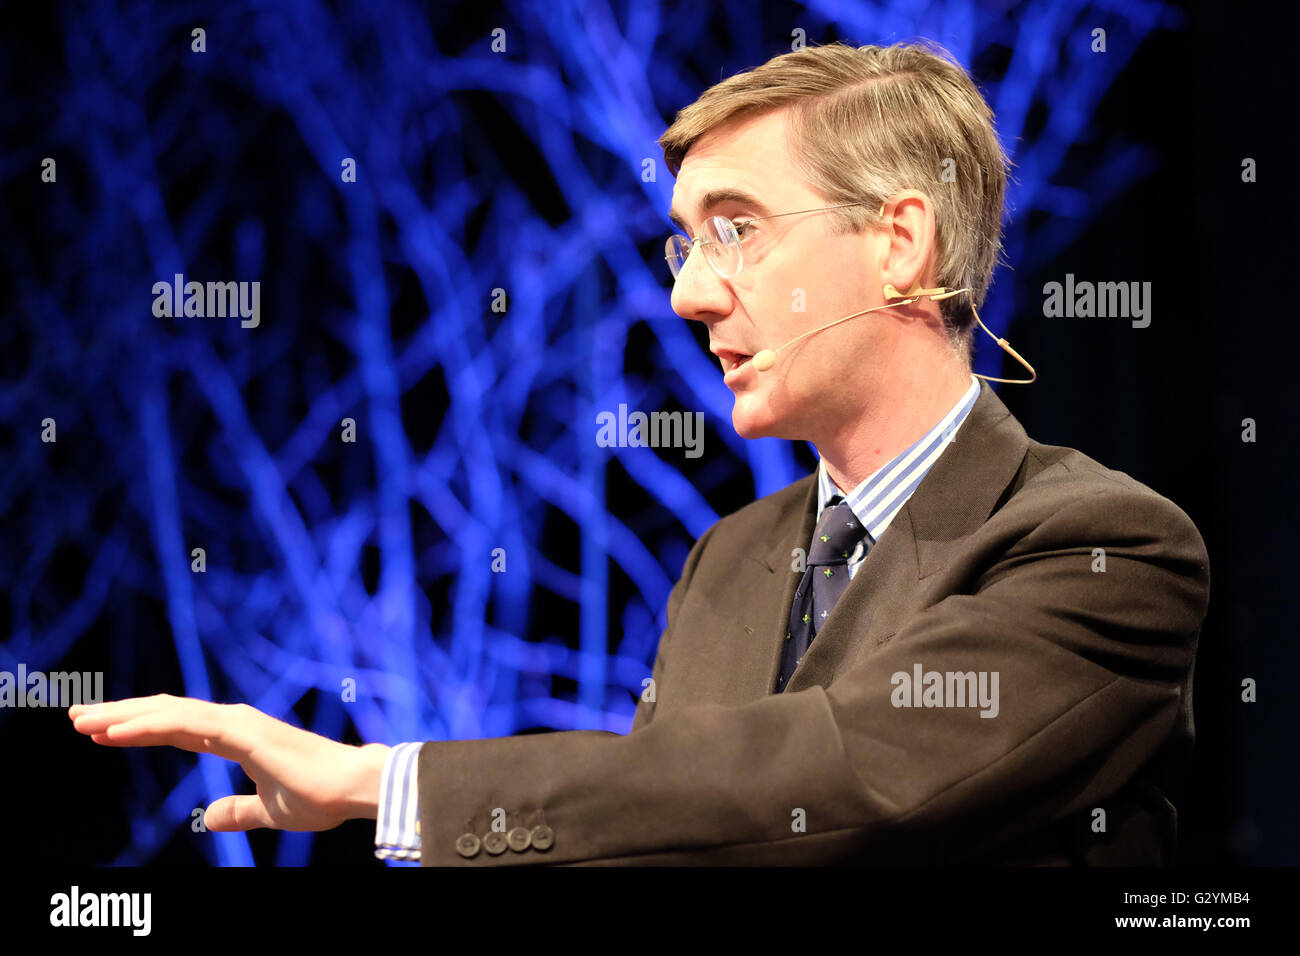 Jacob Rees-Mogg at Hay Festival 2016, Wales, UK - June 2016 -  Tory MP Jacob Rees-Mogg on stage at Hay Festival - Stock Image